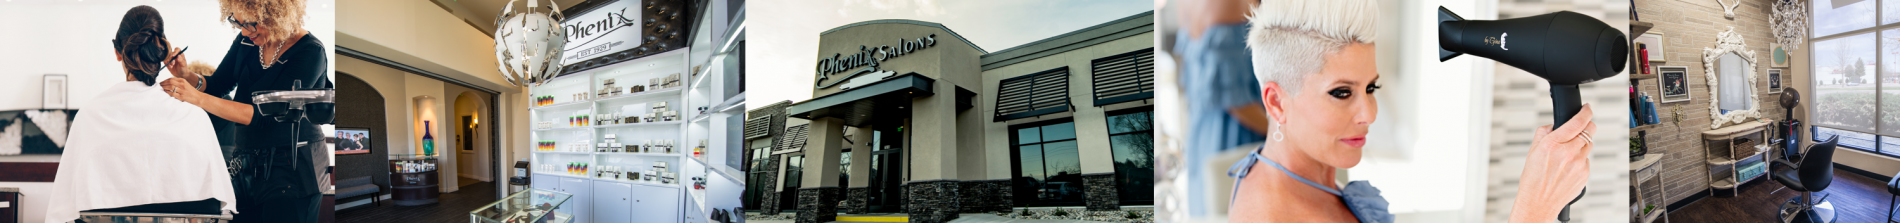 A collage of interior and exterior Phenix Salon Suites location shots.